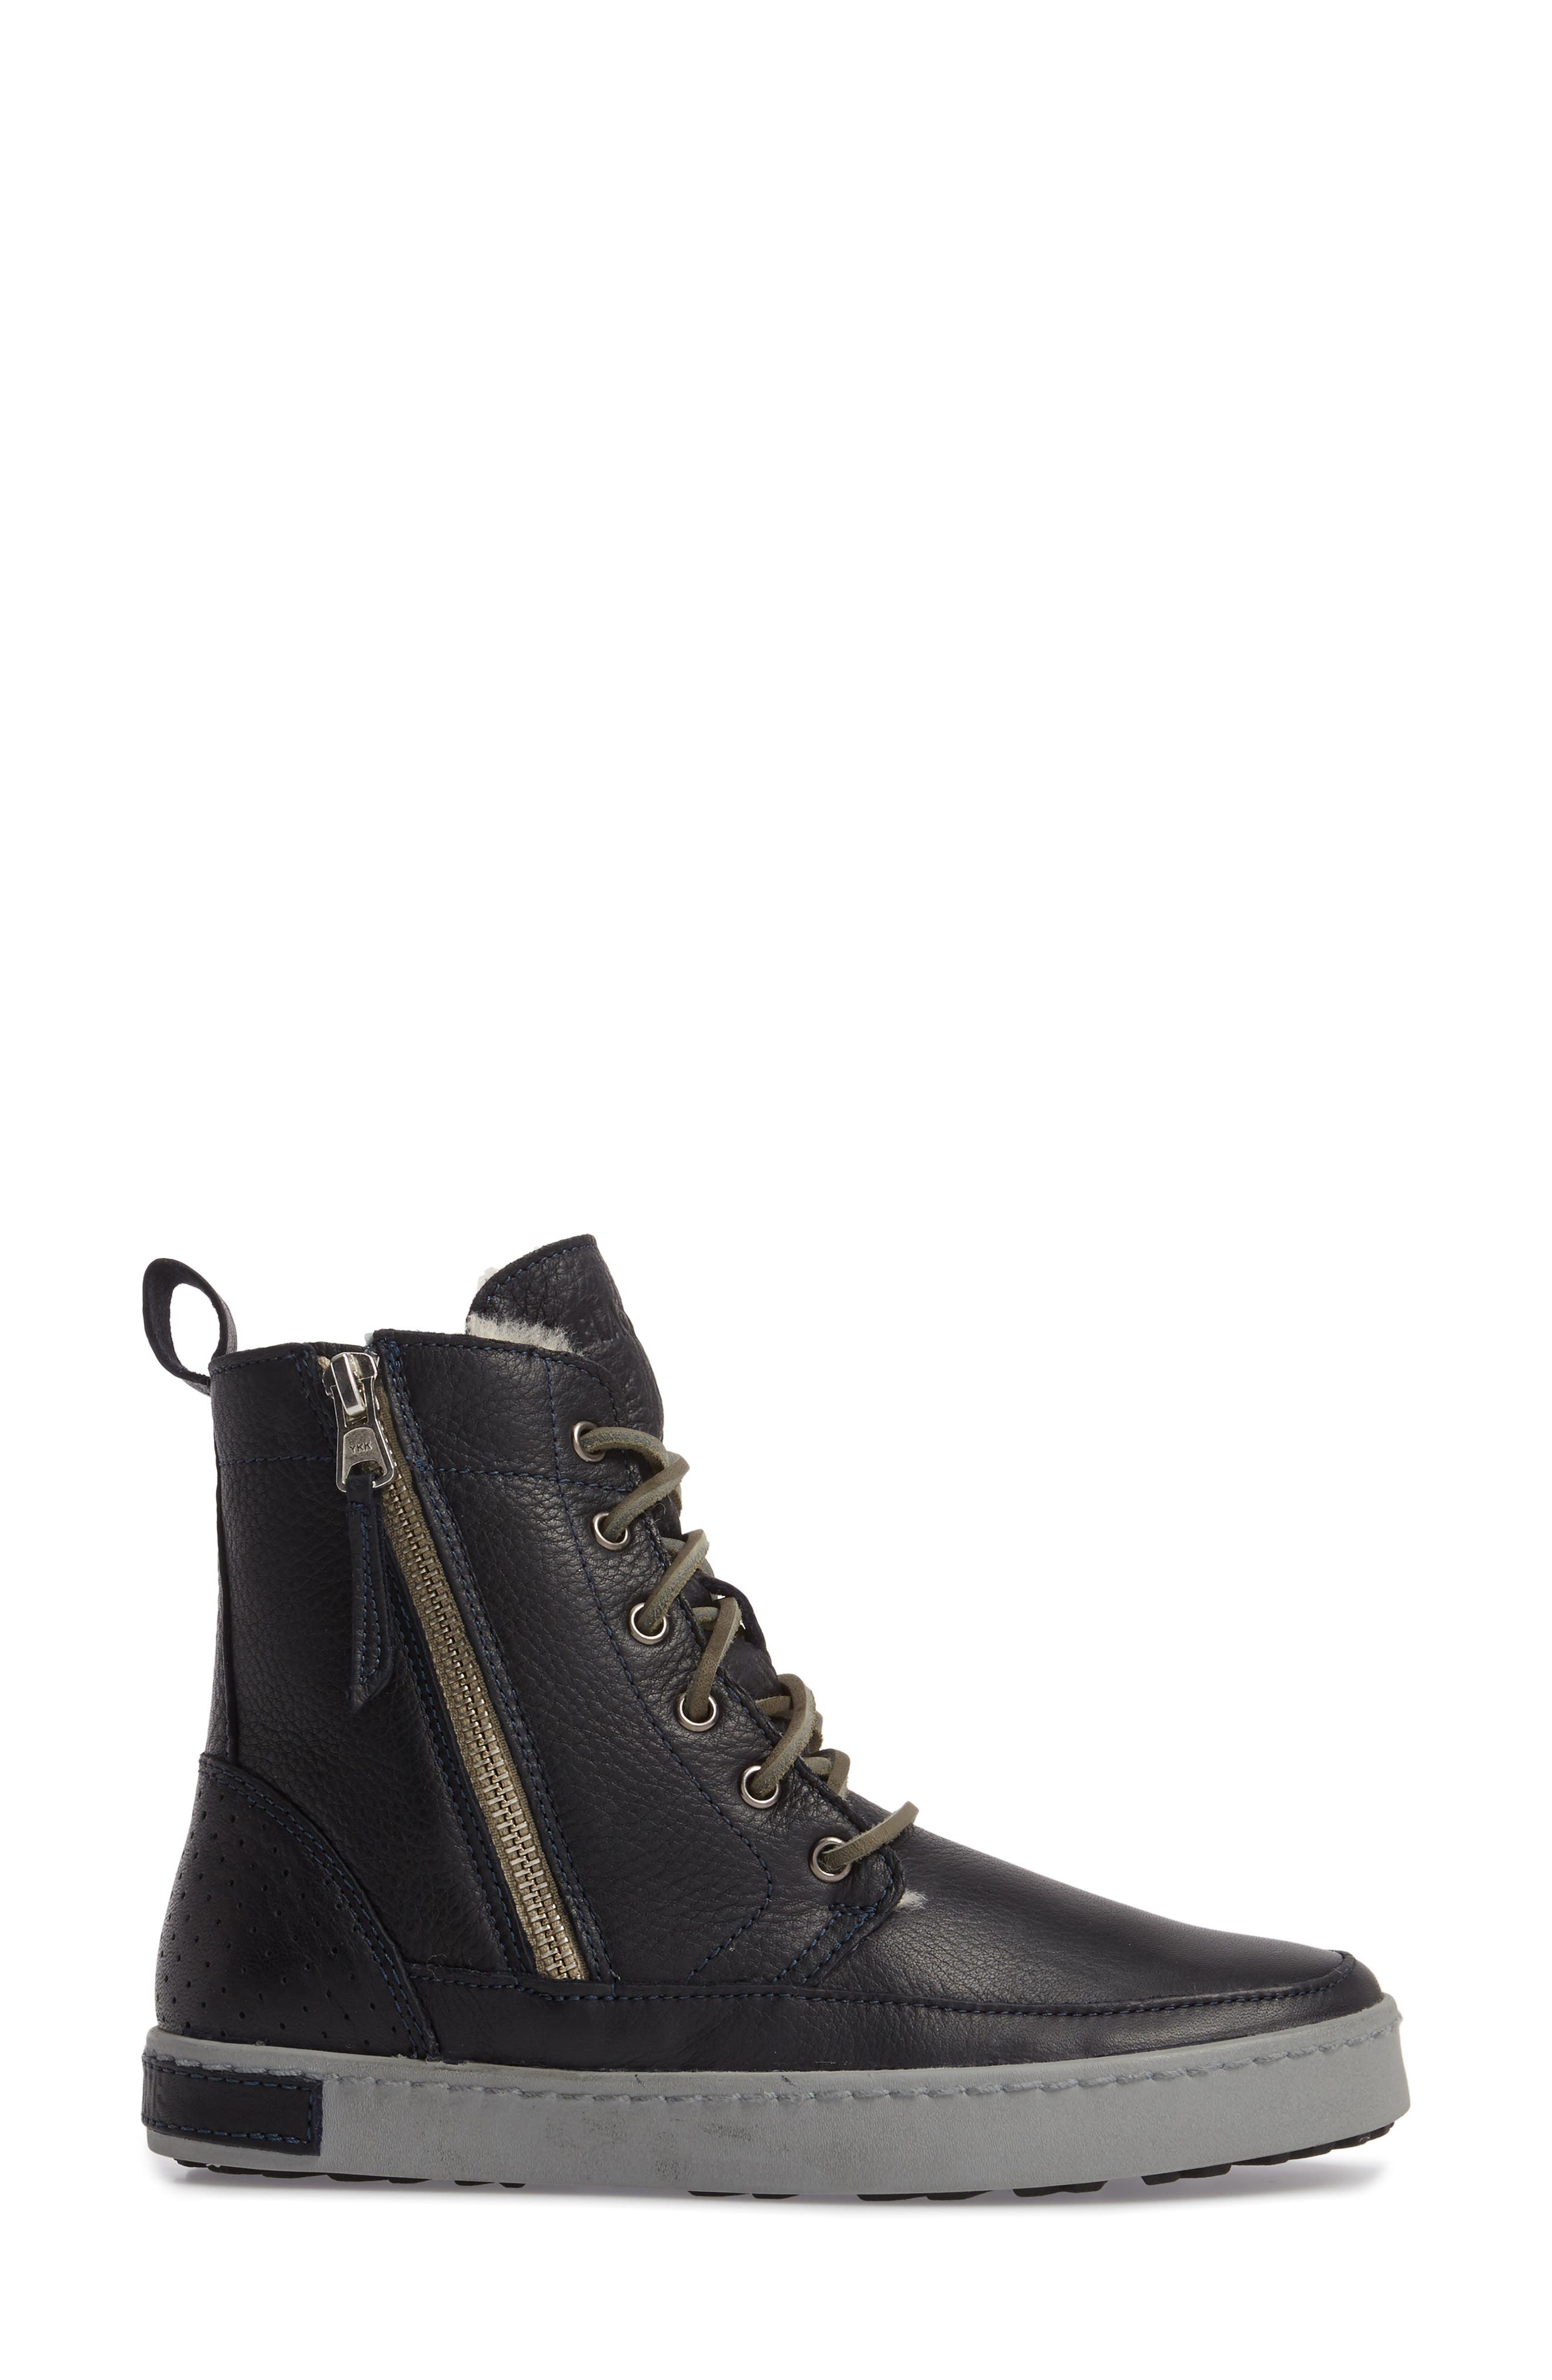 'CW96' Genuine Shearling Lined Sneaker Boot,                             Alternate thumbnail 3, color,                             Dark Indigo Leather